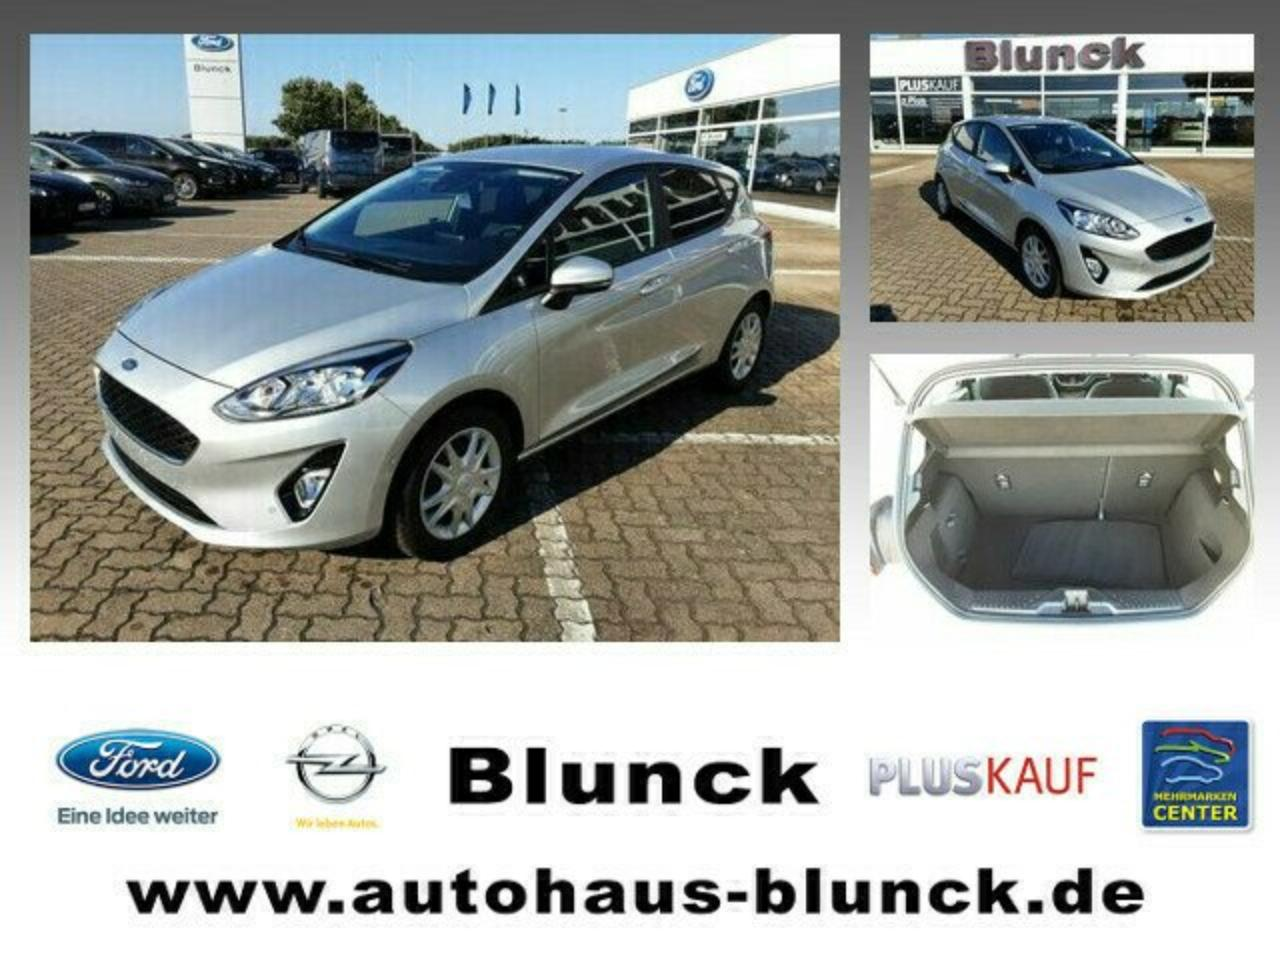 Ford Fiesta Cool & Connect 5-turig 100 PS